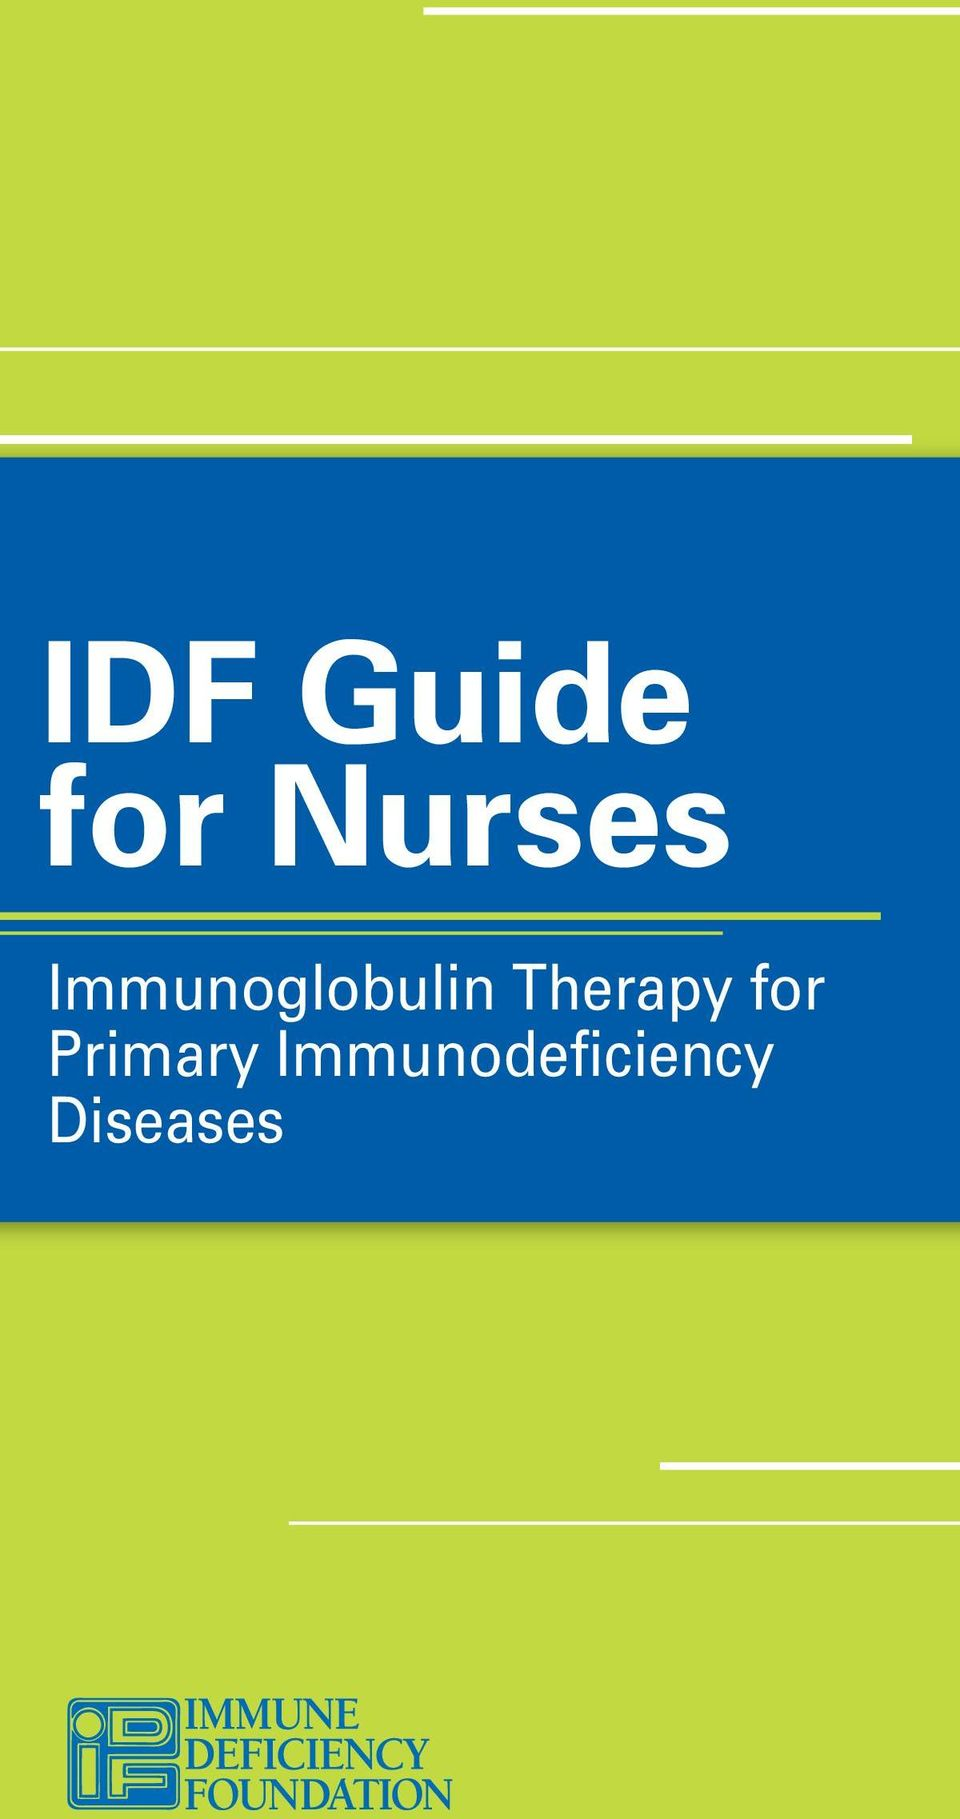 for Primary Immunodeficiency